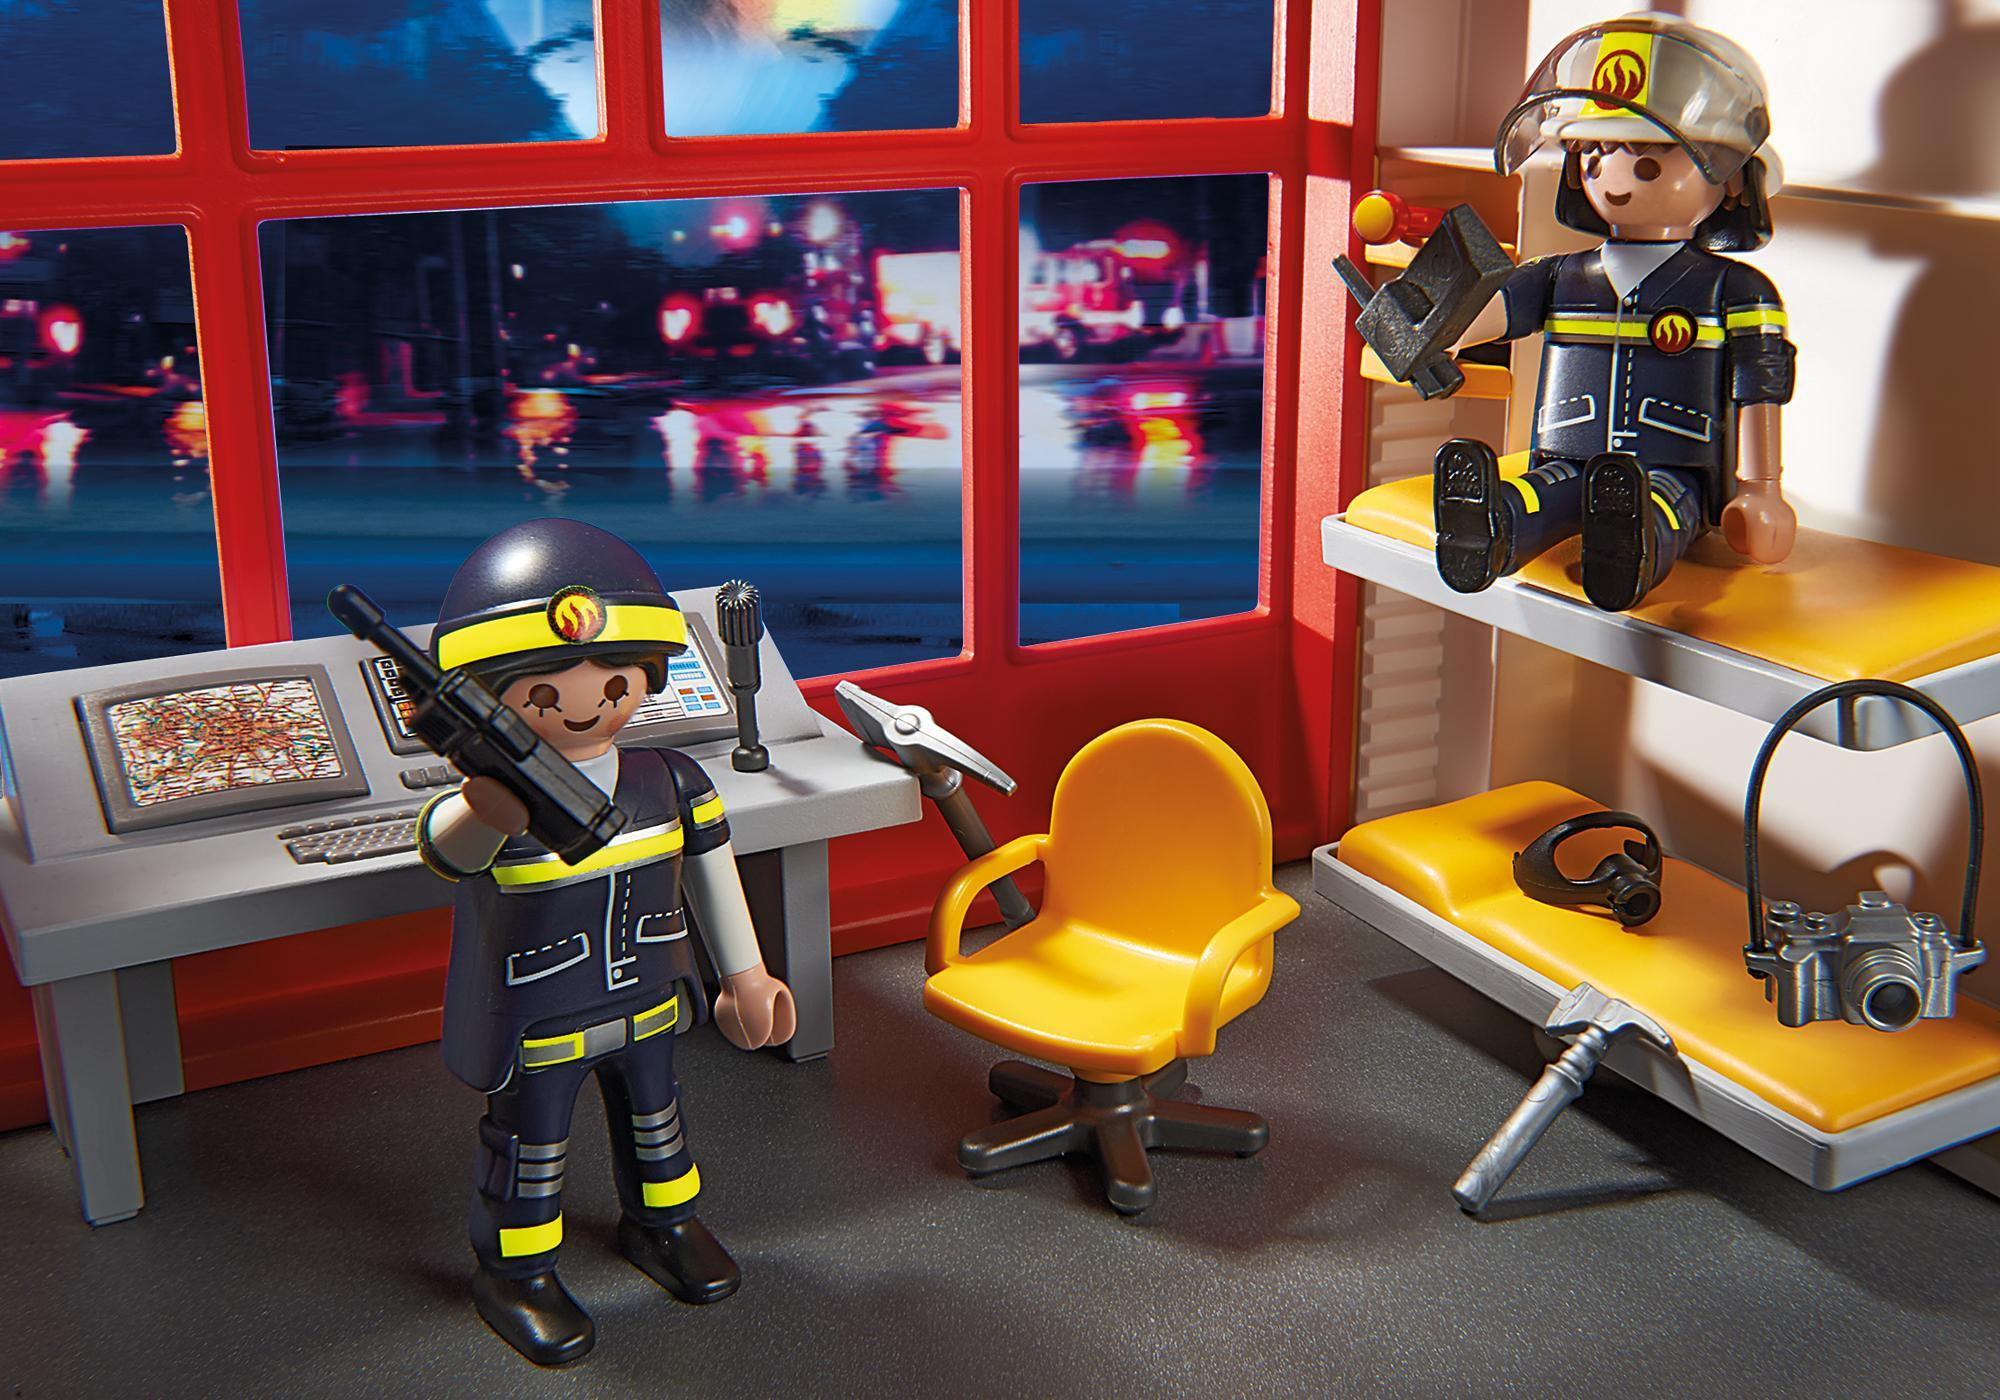 http://media.playmobil.com/i/playmobil/5361_product_extra2